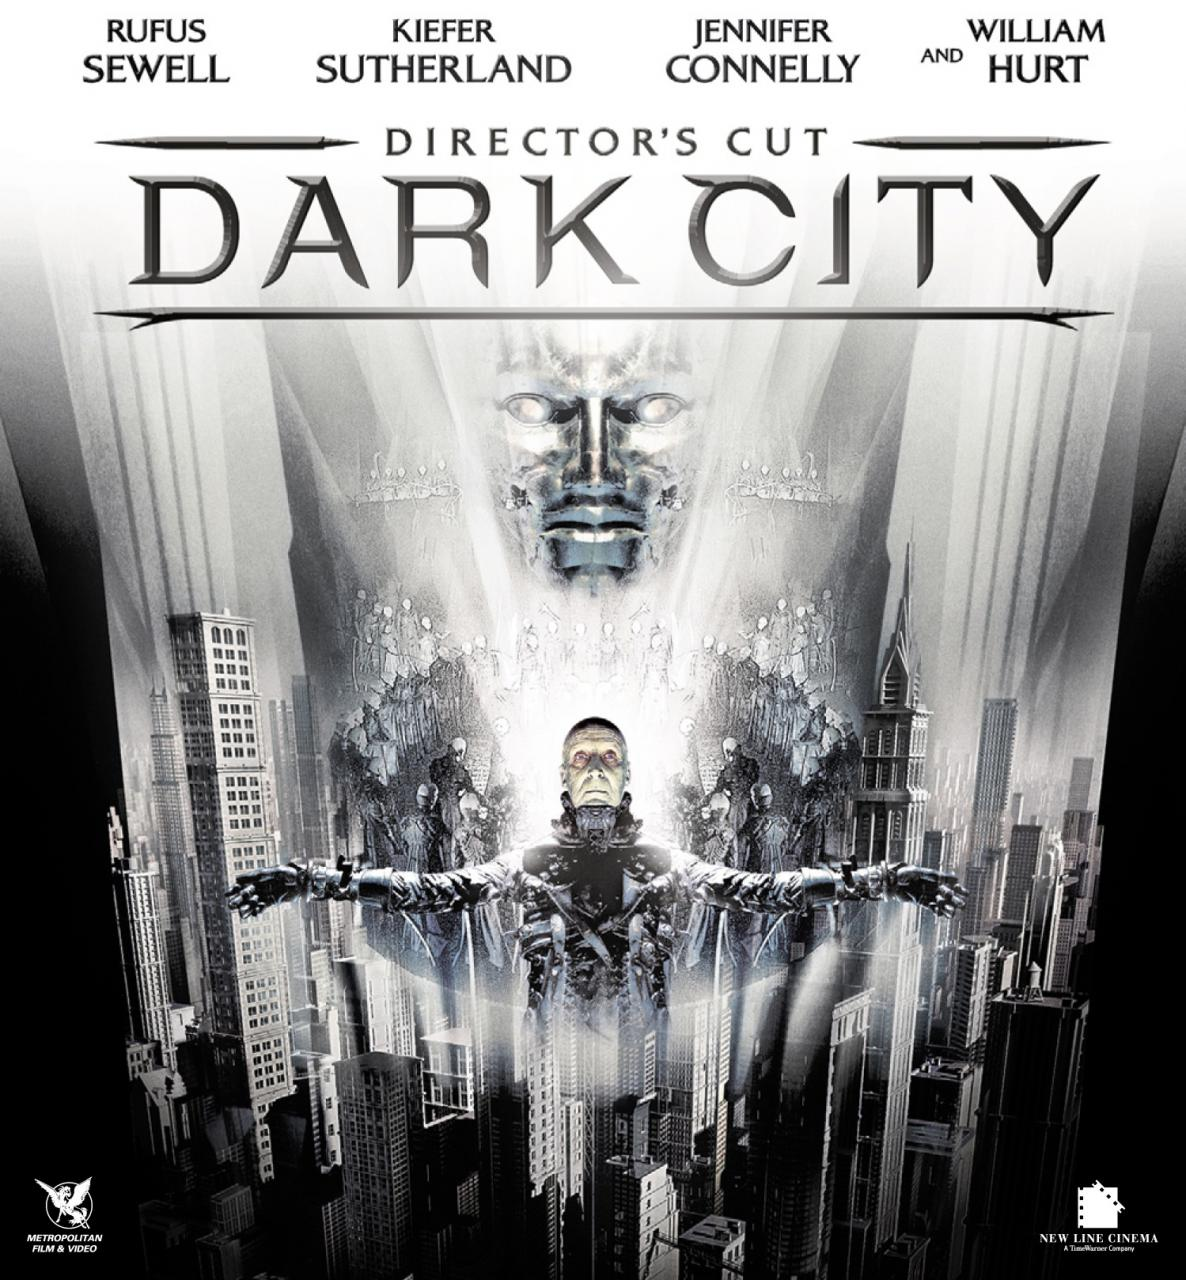 a description of science fiction noir by alex proyas as the director of dark city Film-noir-ish and director alex proyas decided that that next project would be dark city, a brooding but inspired science fiction and noir film.